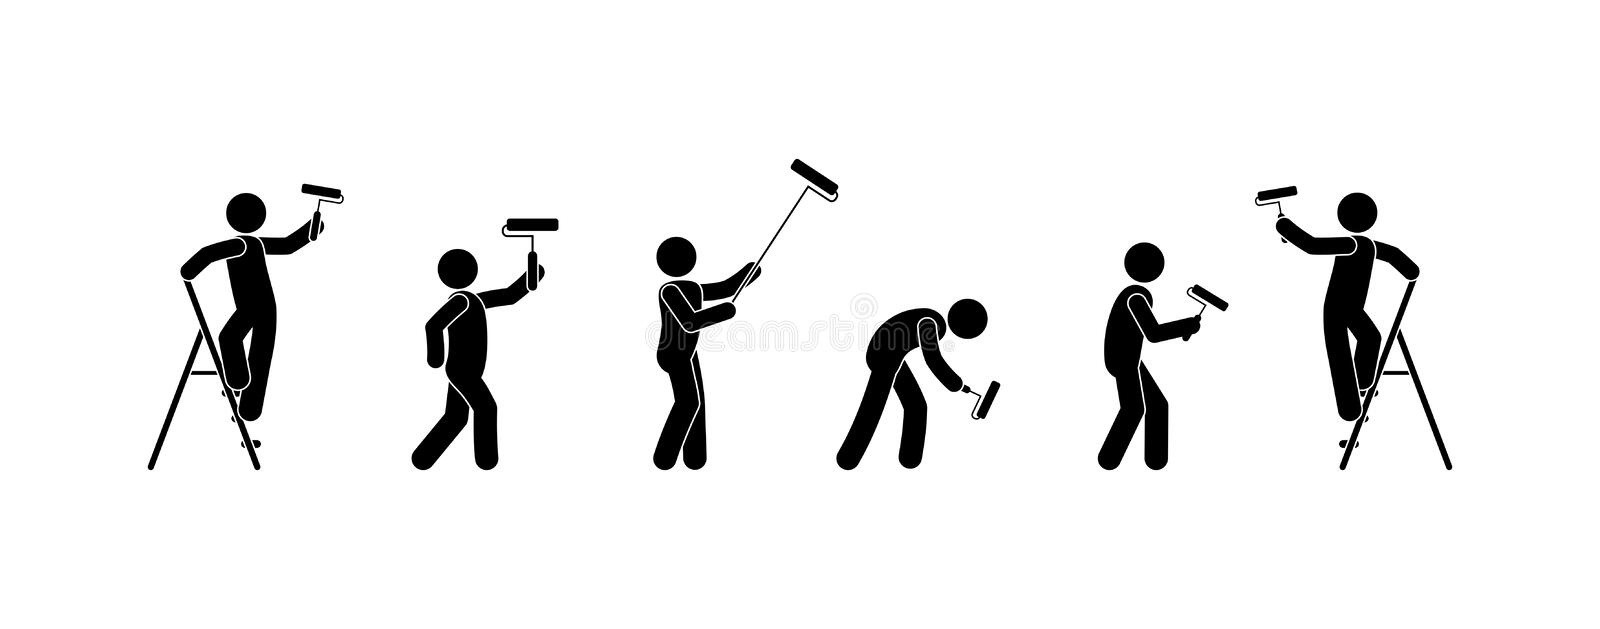 Man is engaged in repair wall painting icons, stick figure people with paint roller stock illustration